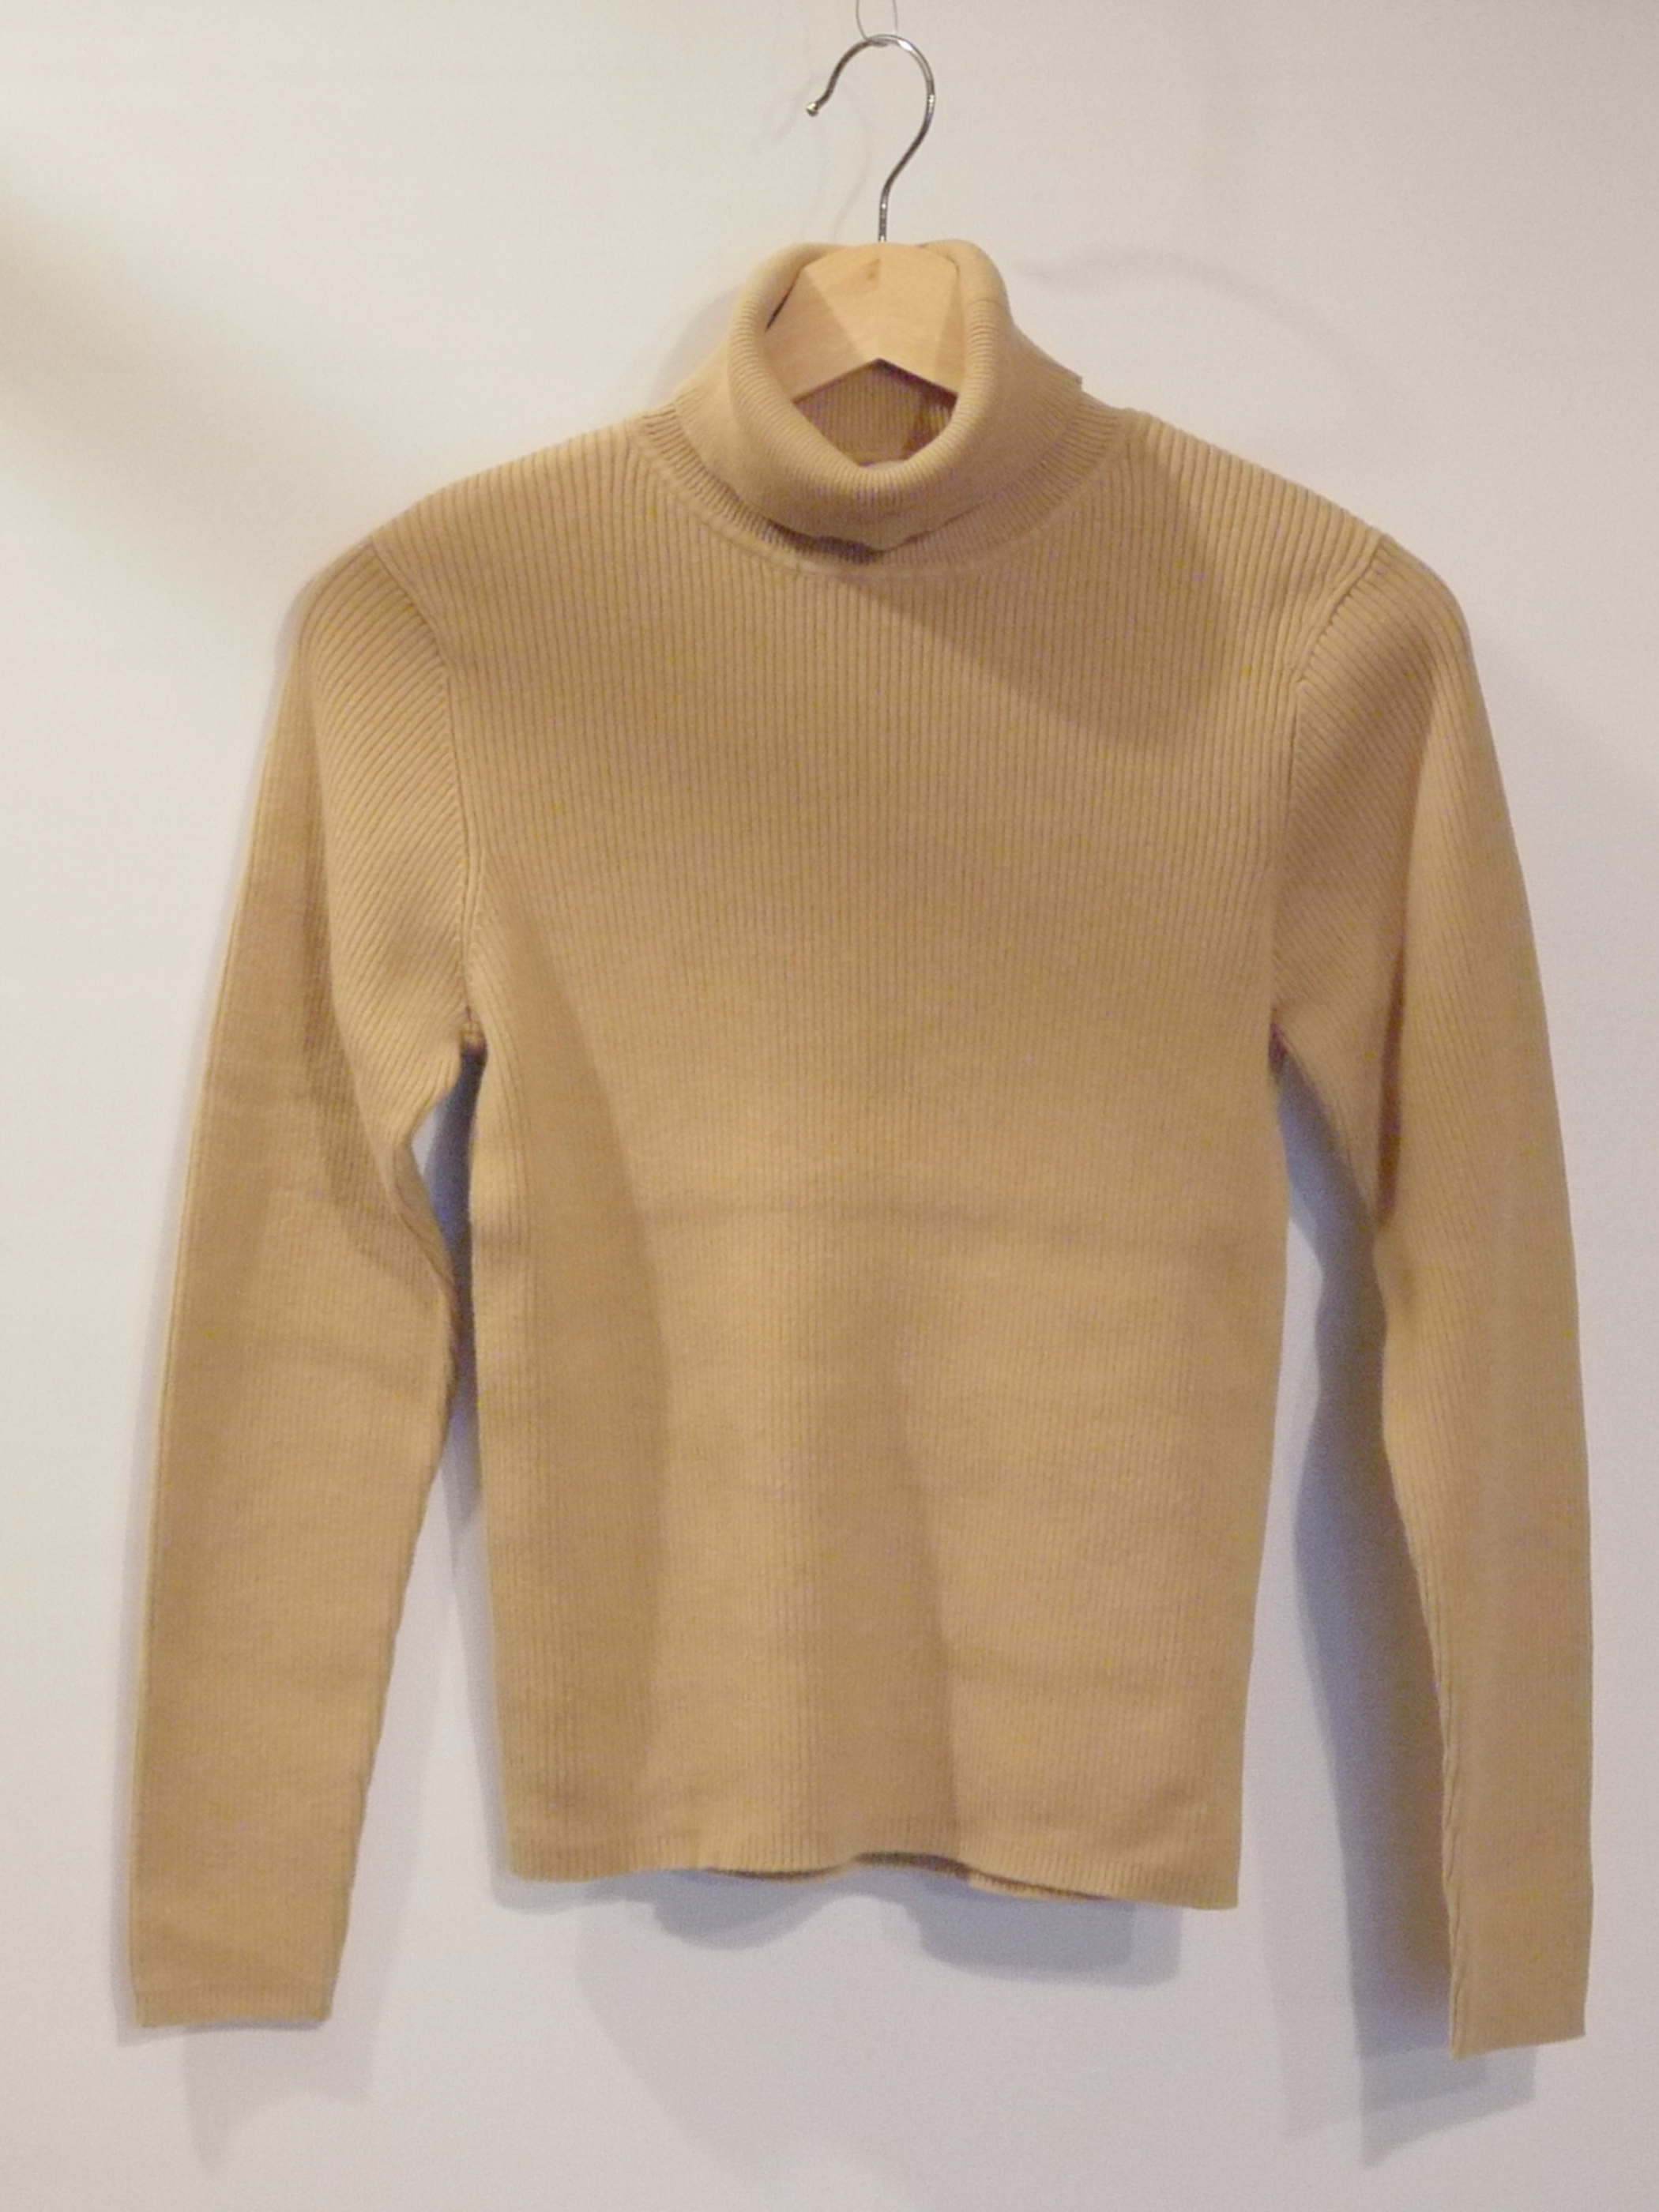 NORTHERN REFLECTIONS Turtleneck sweater SizeM